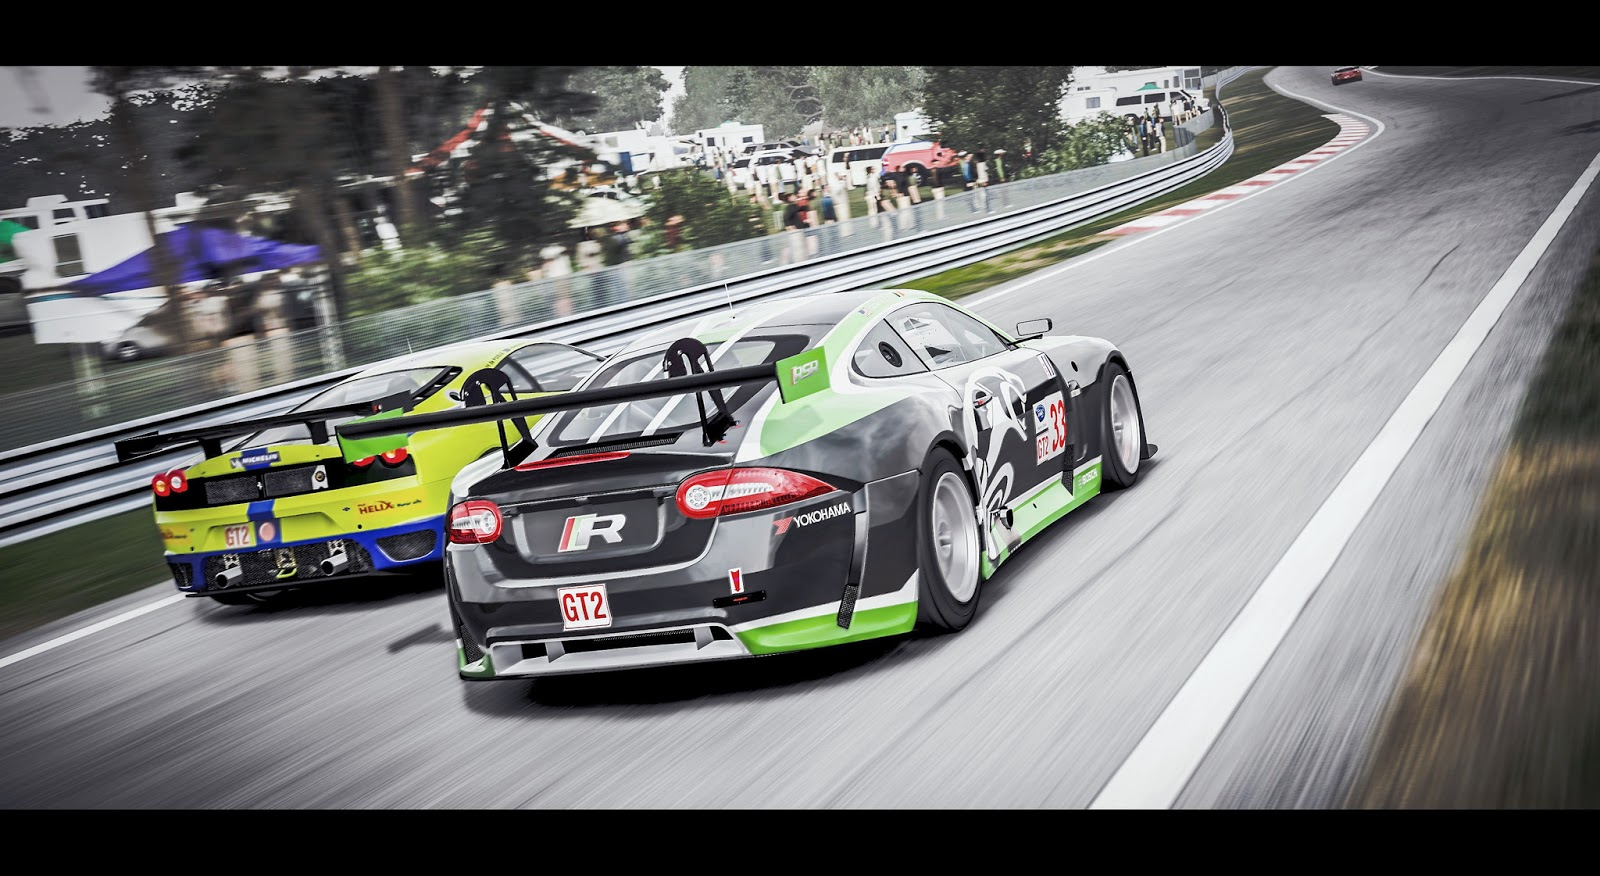 Best Race Car Video Games